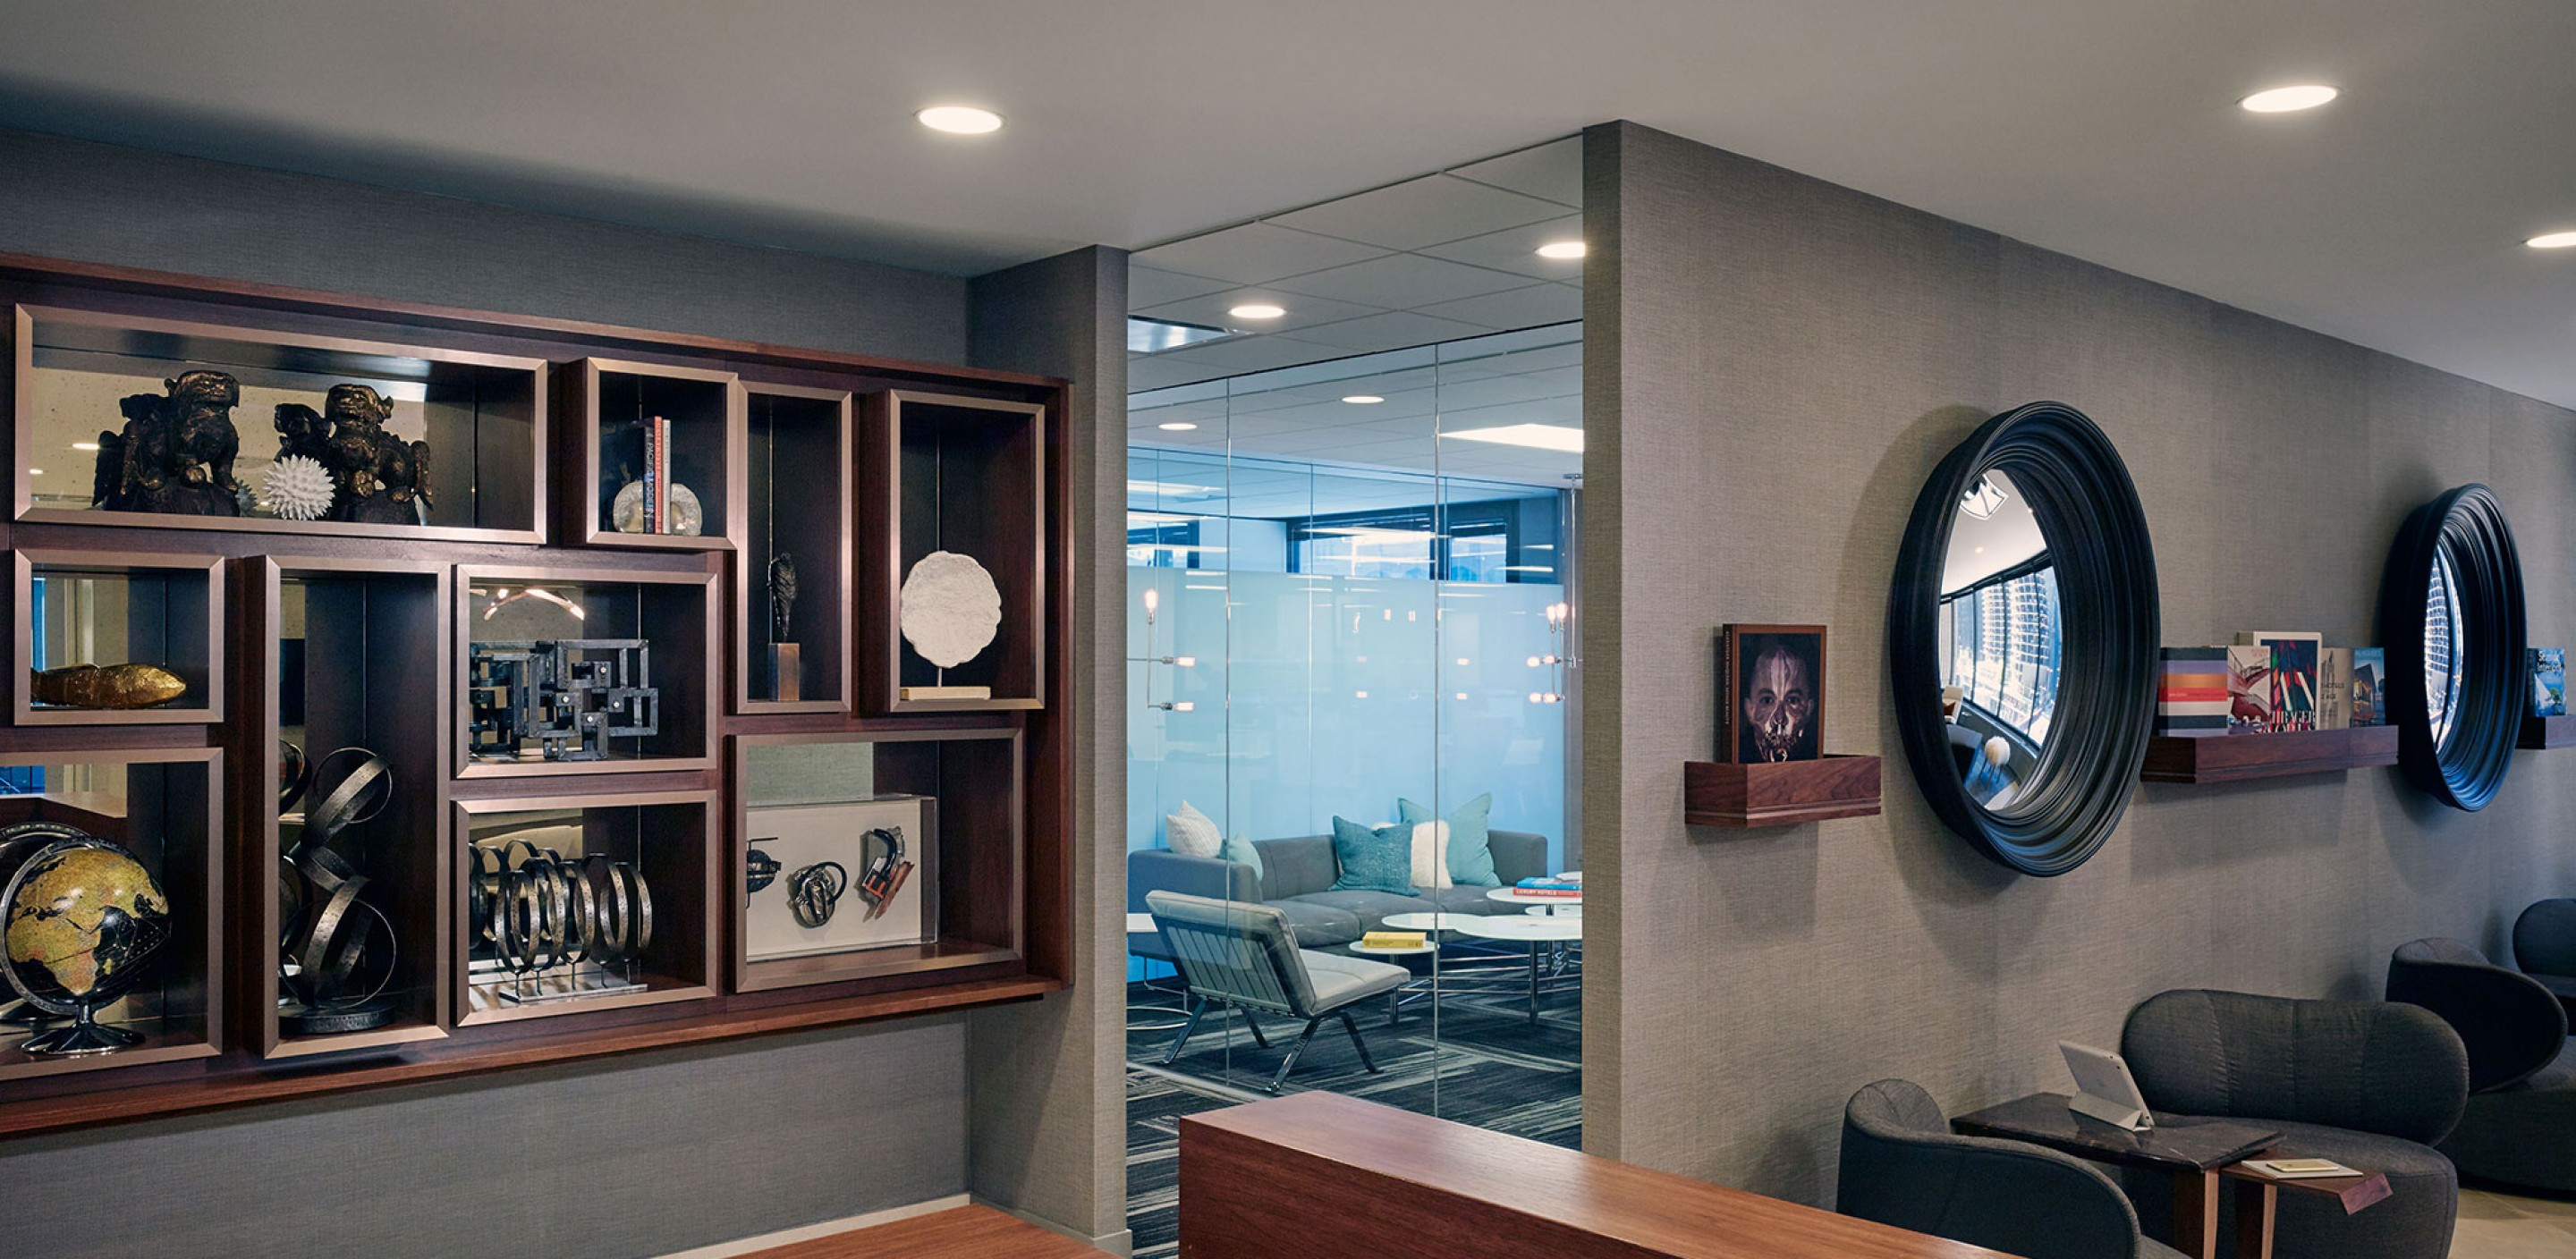 Office space the gettys group chicago the gettys group for Interior design consultant chicago